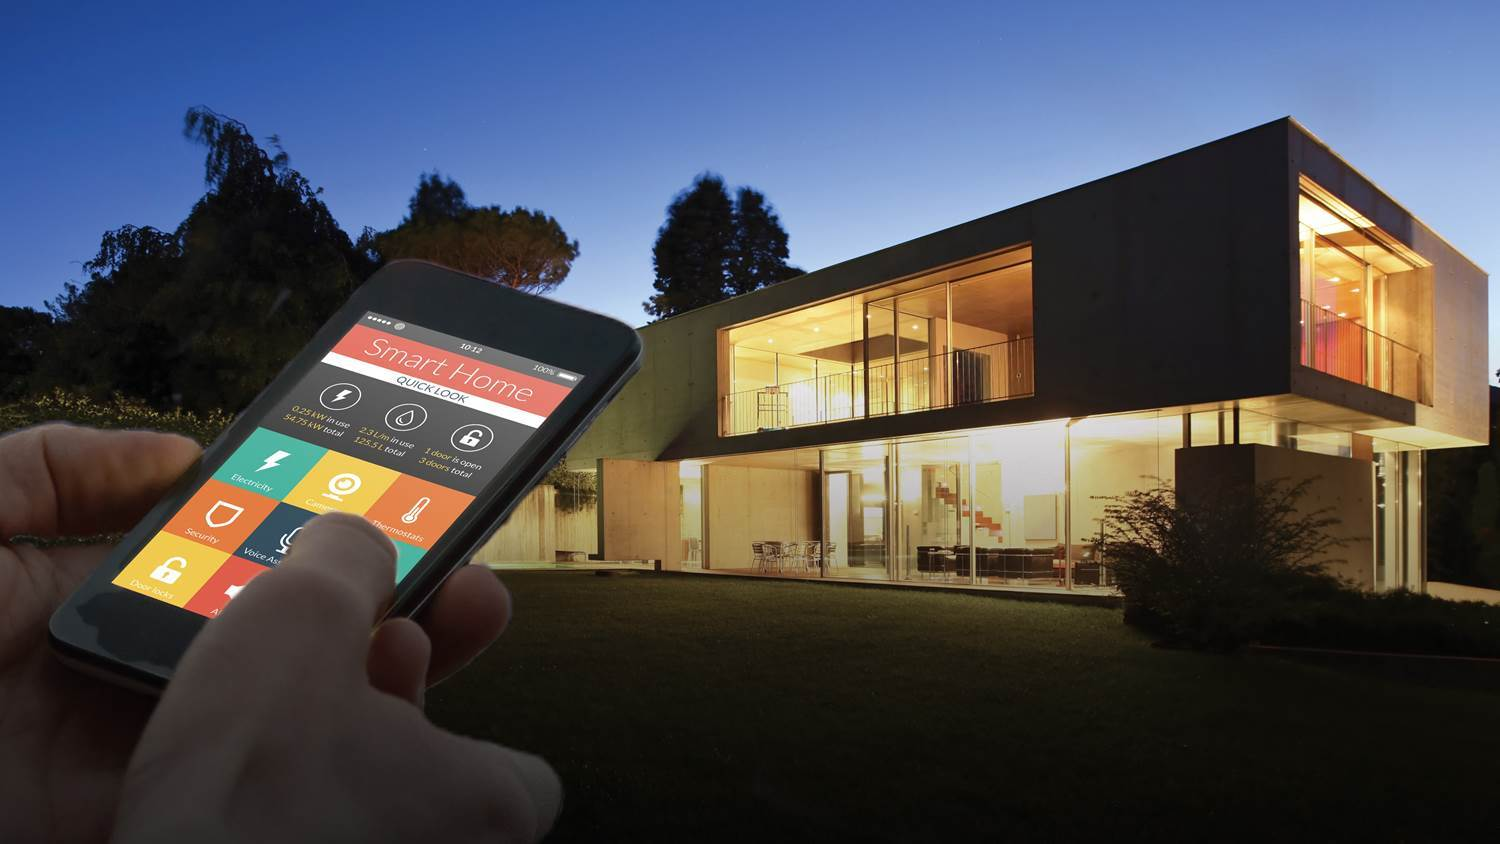 Smart Home TechnologyLearn to stage a home to sell - Designed to familiarize agents with smart home technology and the opportunity of integrating this knowledge into your business. Download PDF Guide